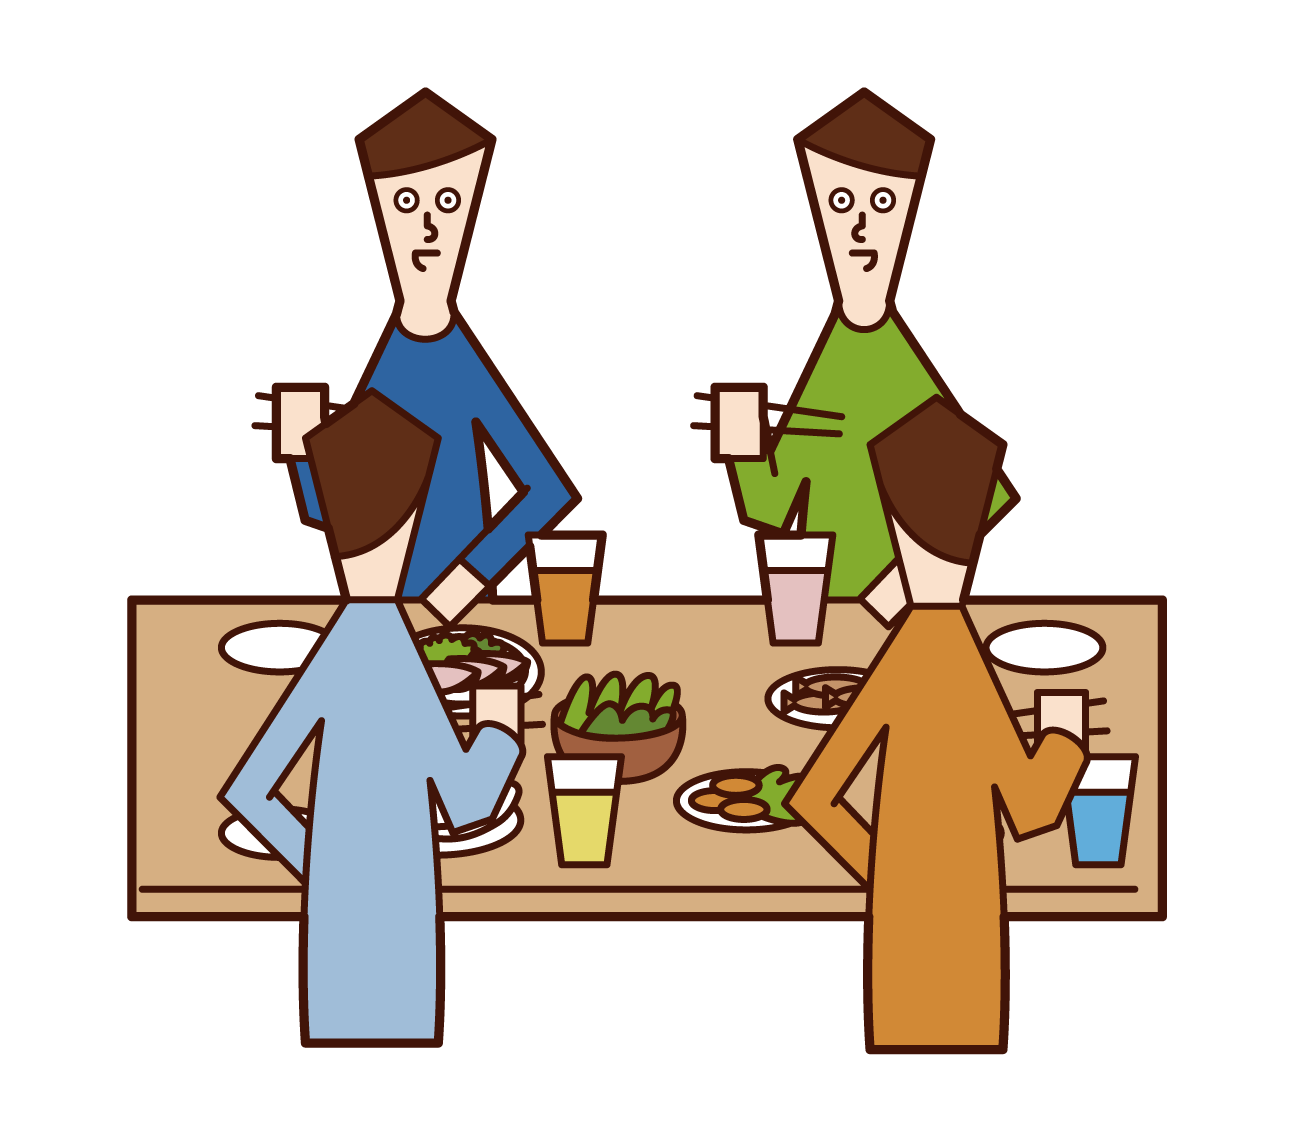 Illustrations of people (men) enjoying lunch